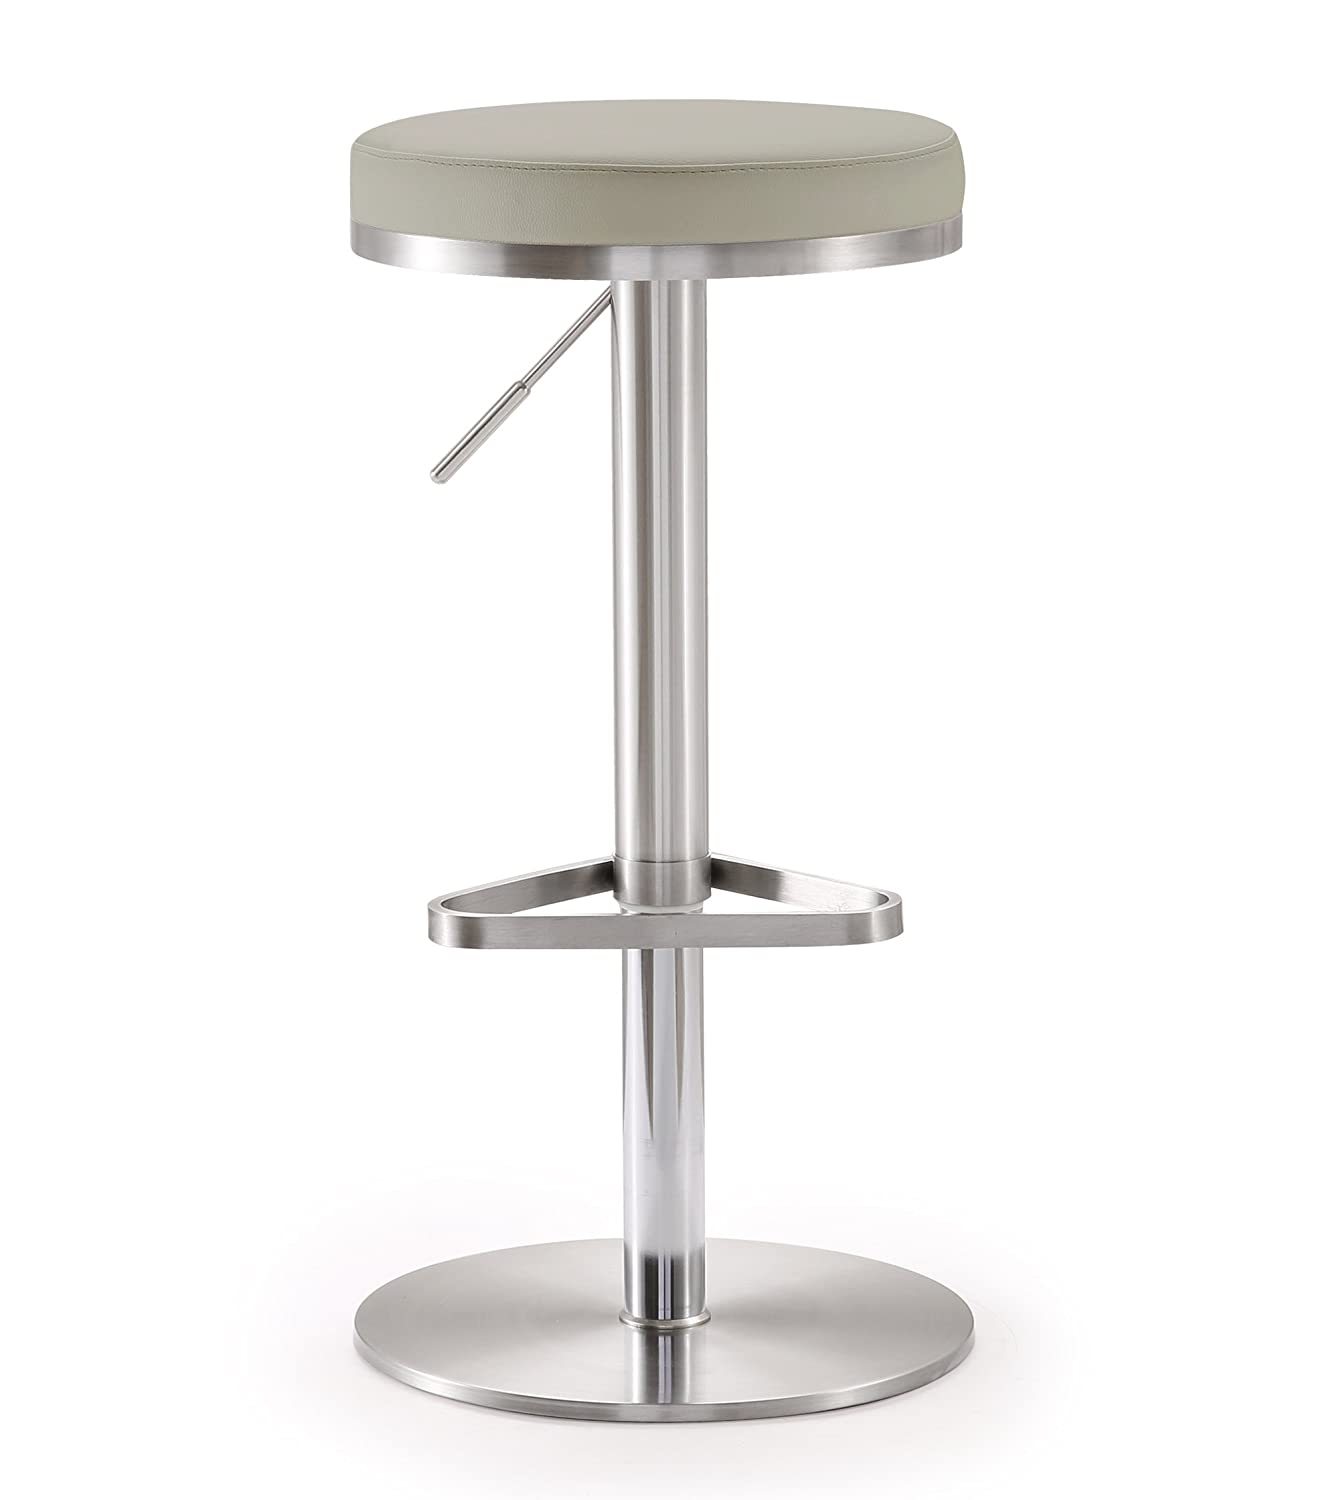 Tov Furniture Fano Light Grey Steel Adjustable Barstool